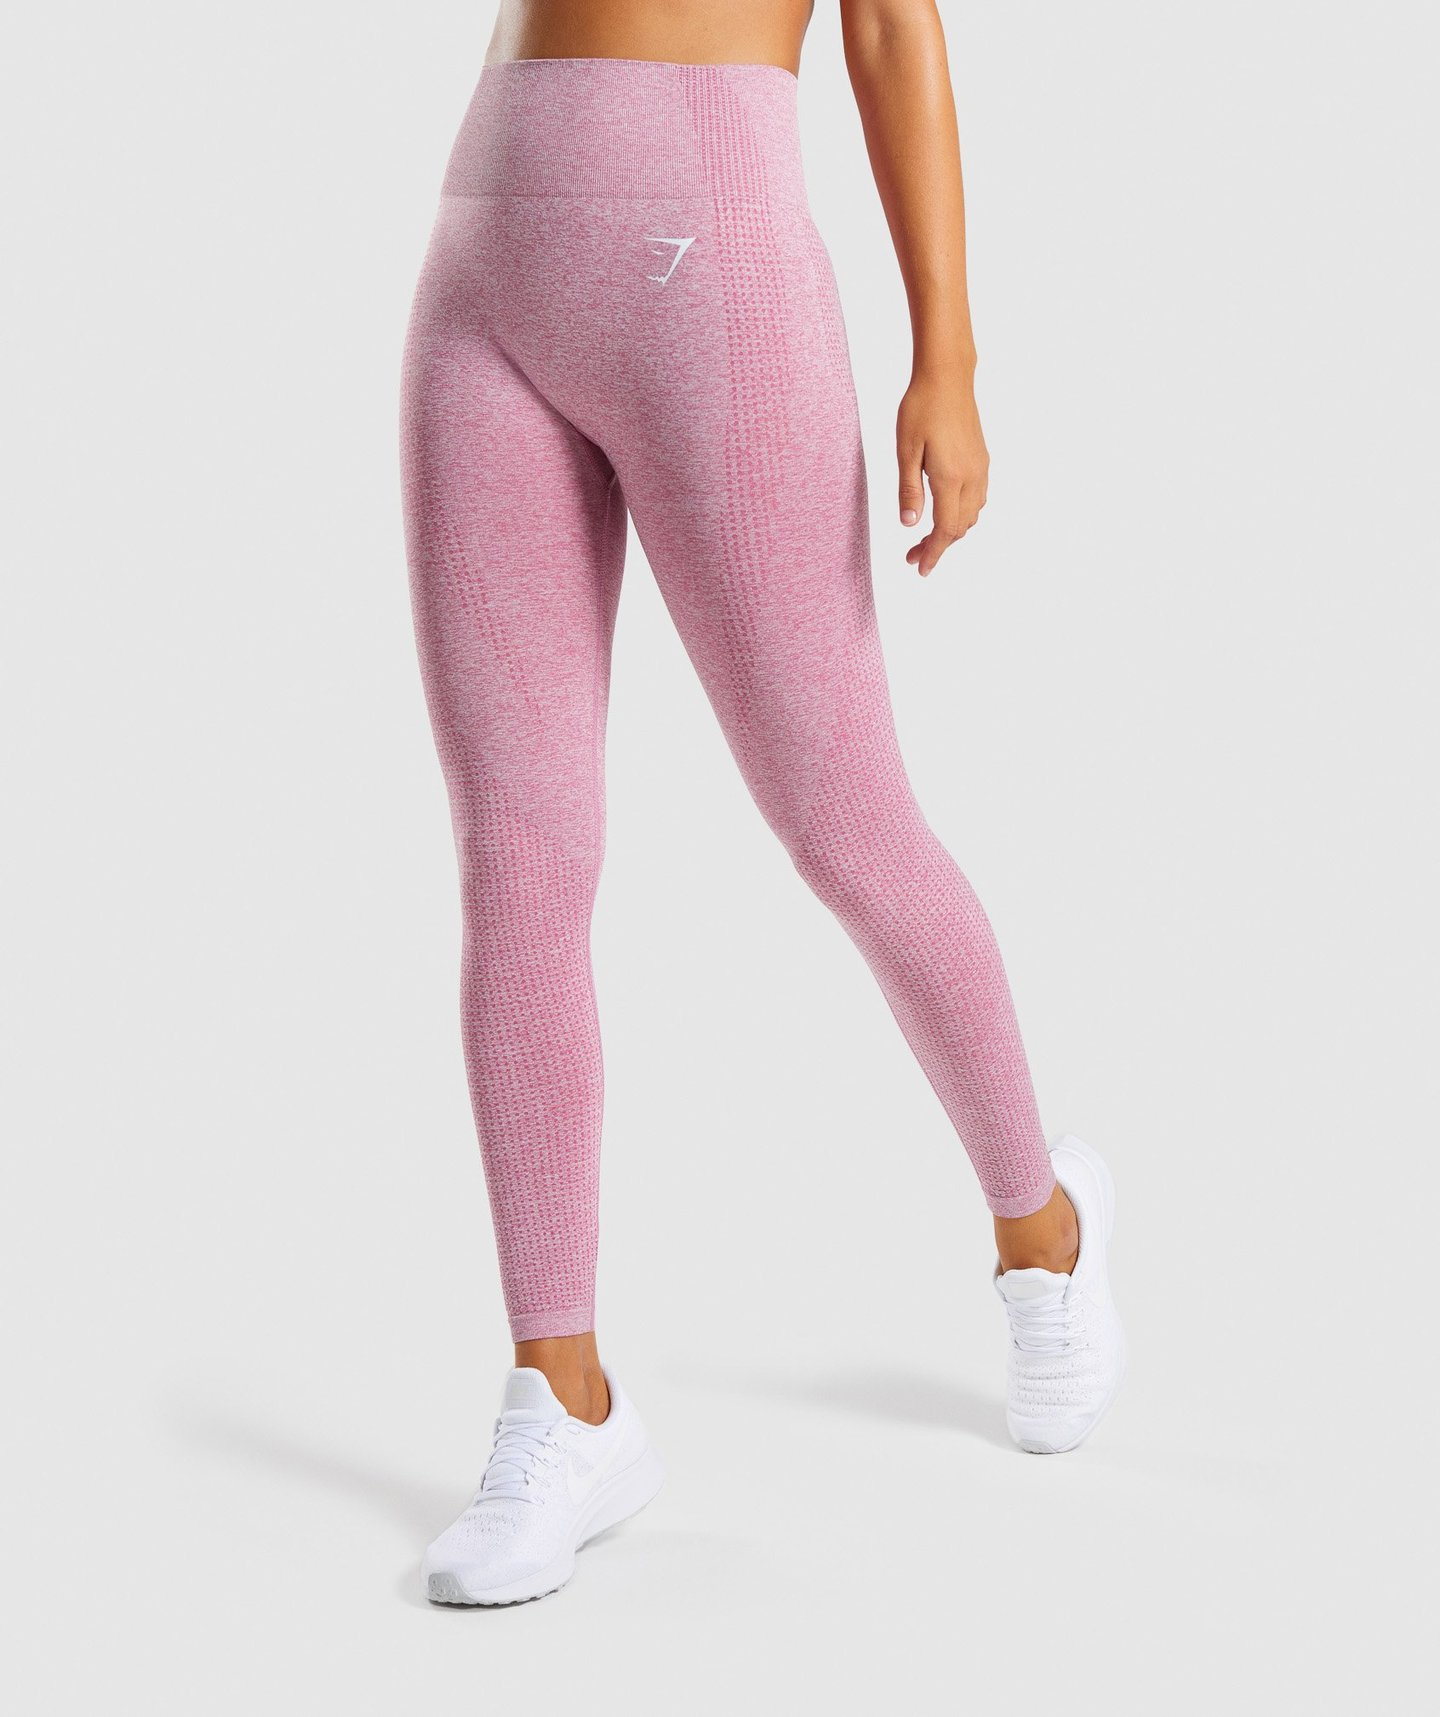 Gymshark Vital Seamless Leggings